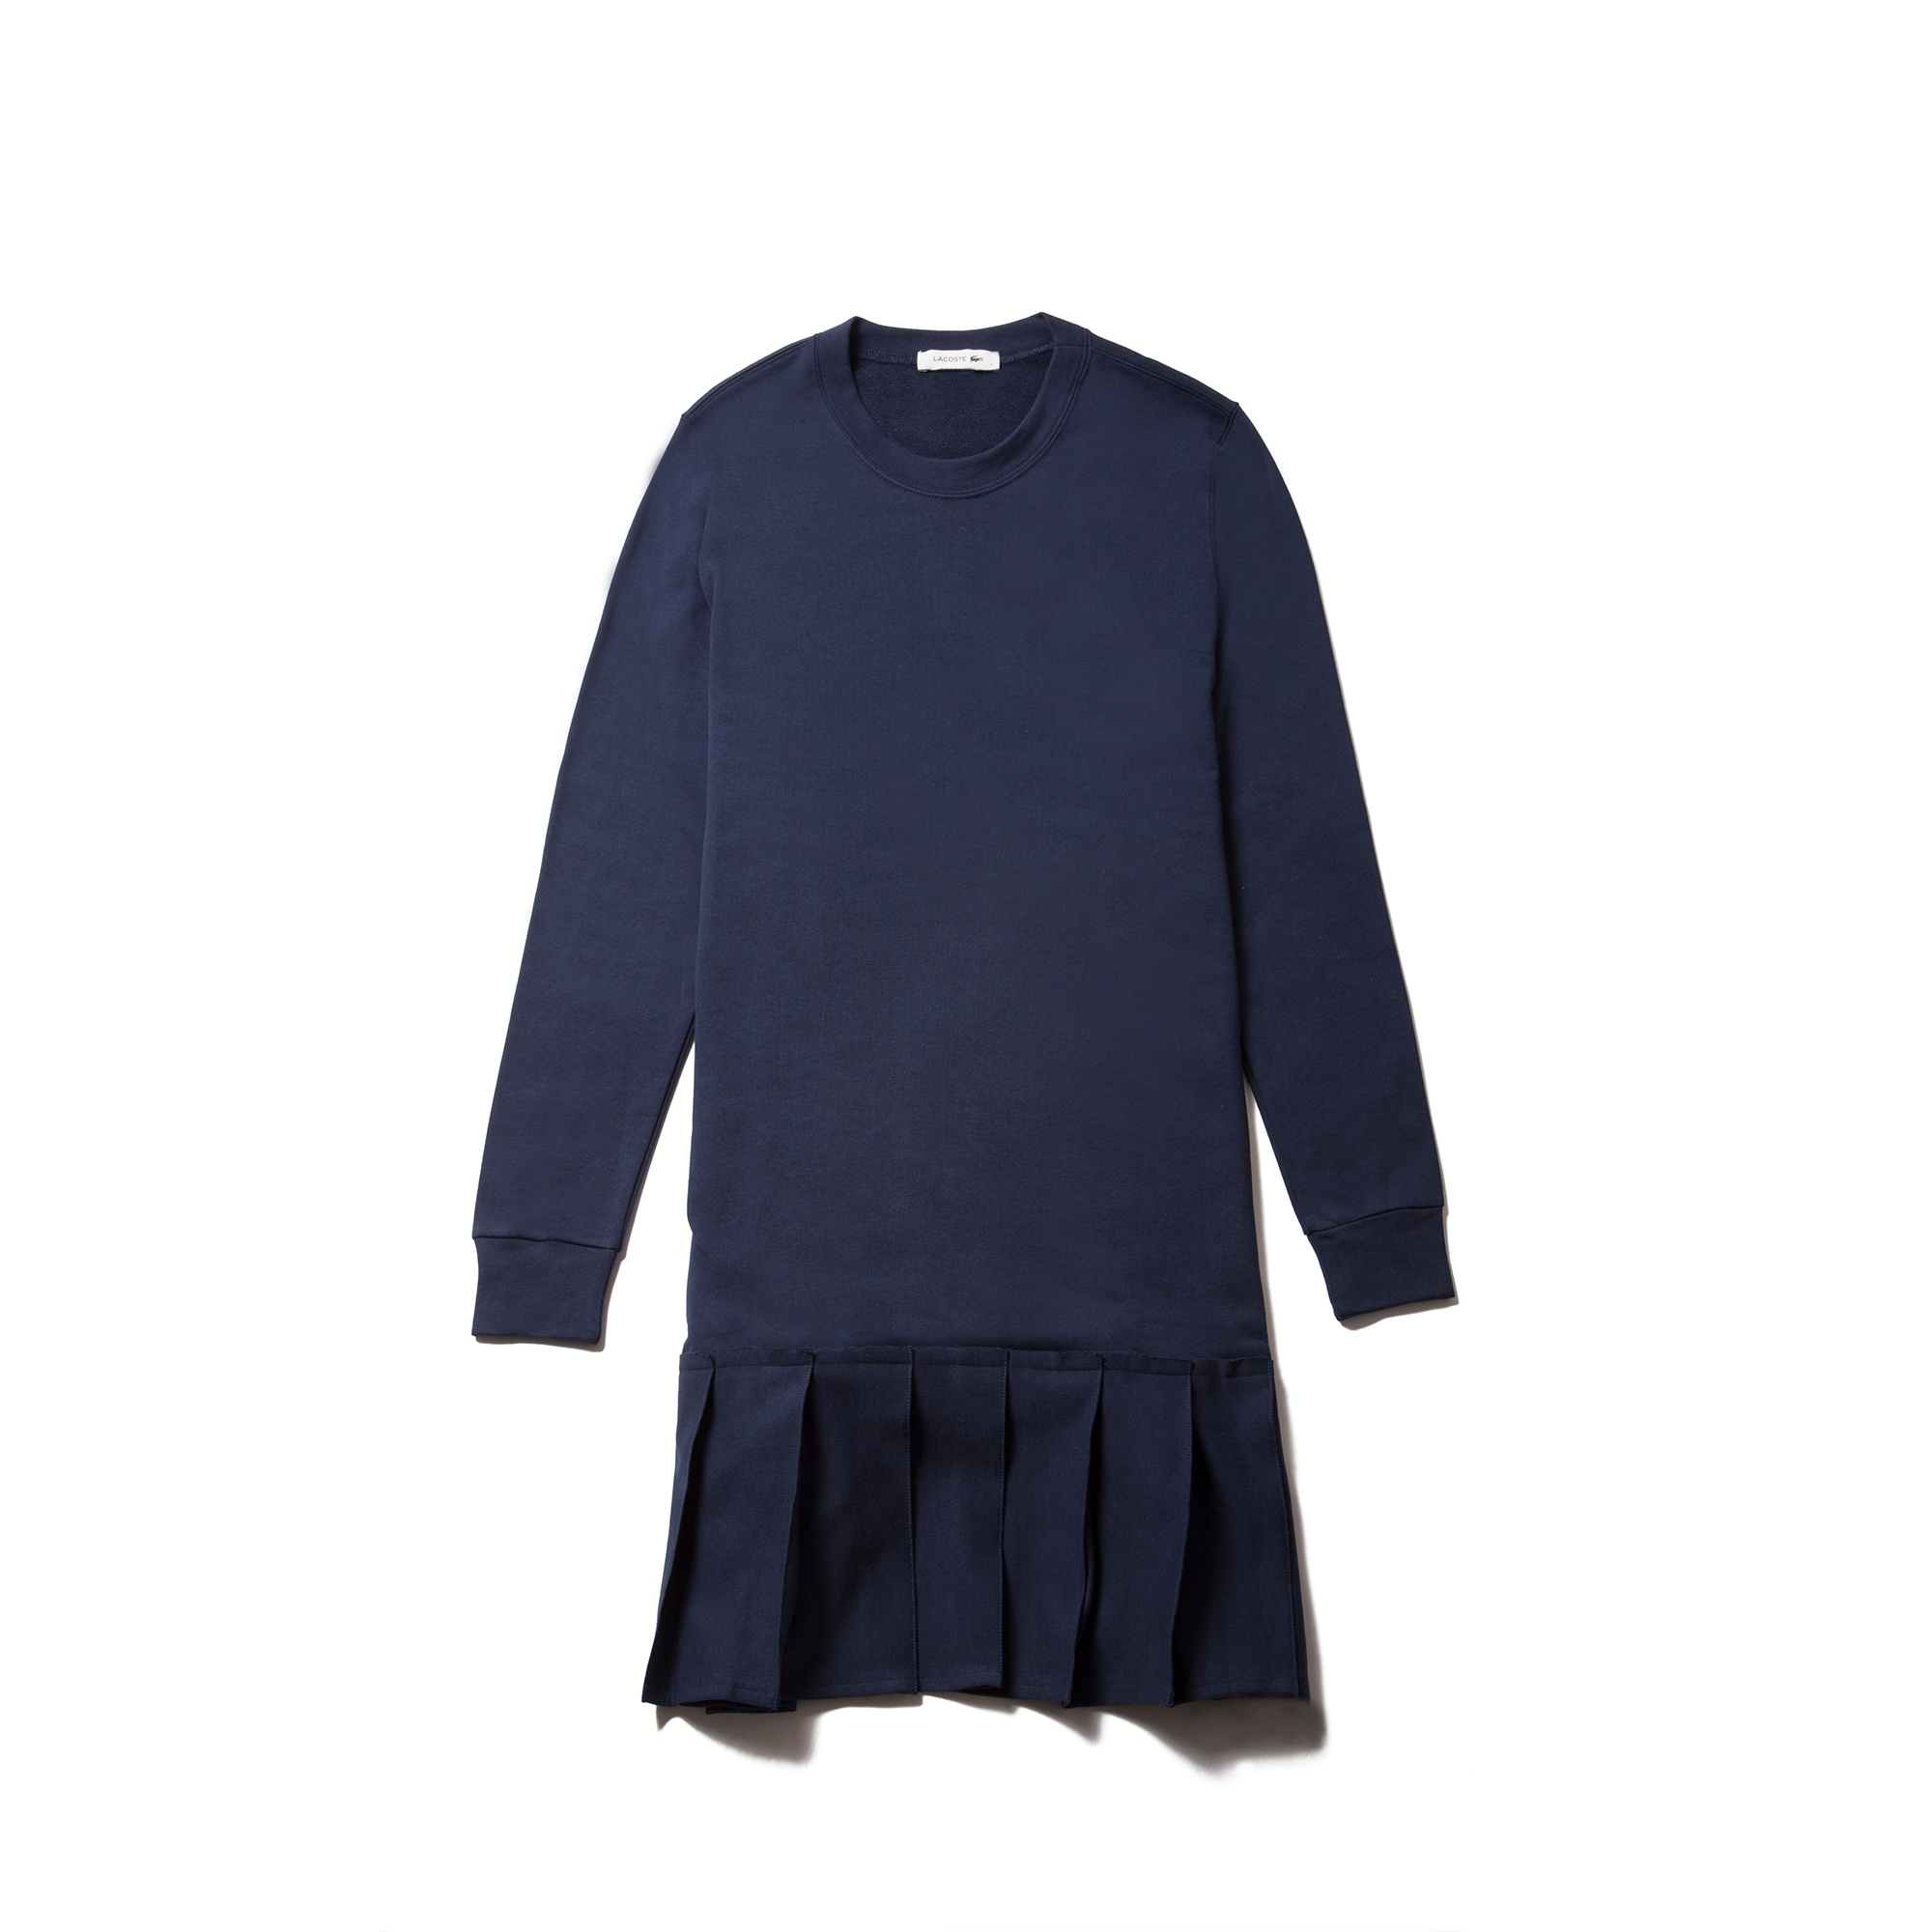 Women's Pleated Fleece Sweatshirt Dress